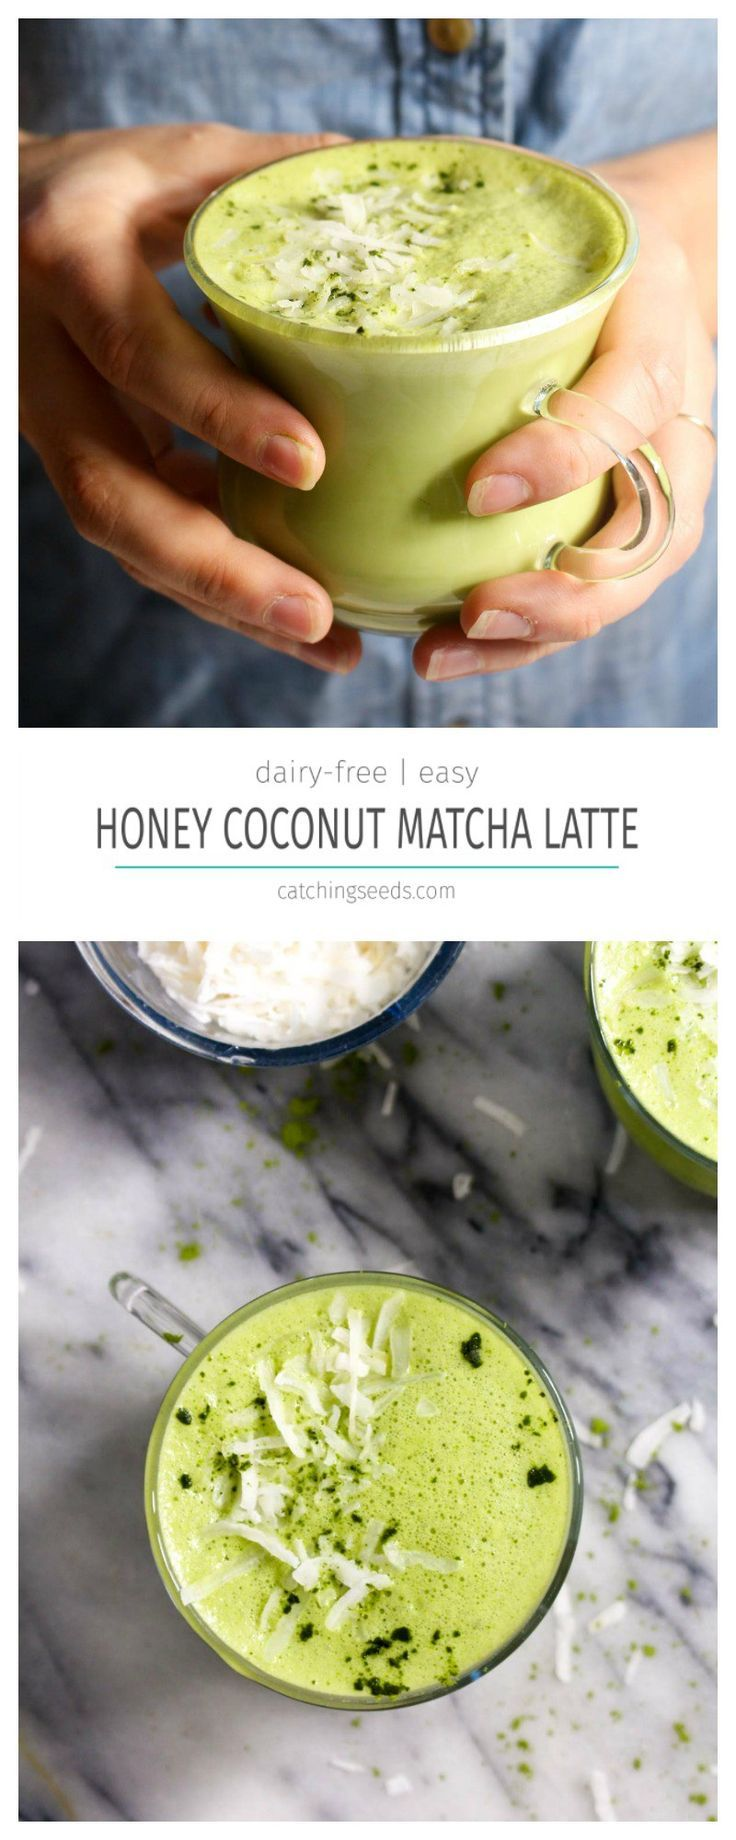 This matcha latte has a secret ingredient to avoid the caffeine jitters. A quick and easy 5 ingredient and 2 step recipe! Ready in 5 minutes!: http://www.catchingseeds.com/honey-coconut-matcha-latte/